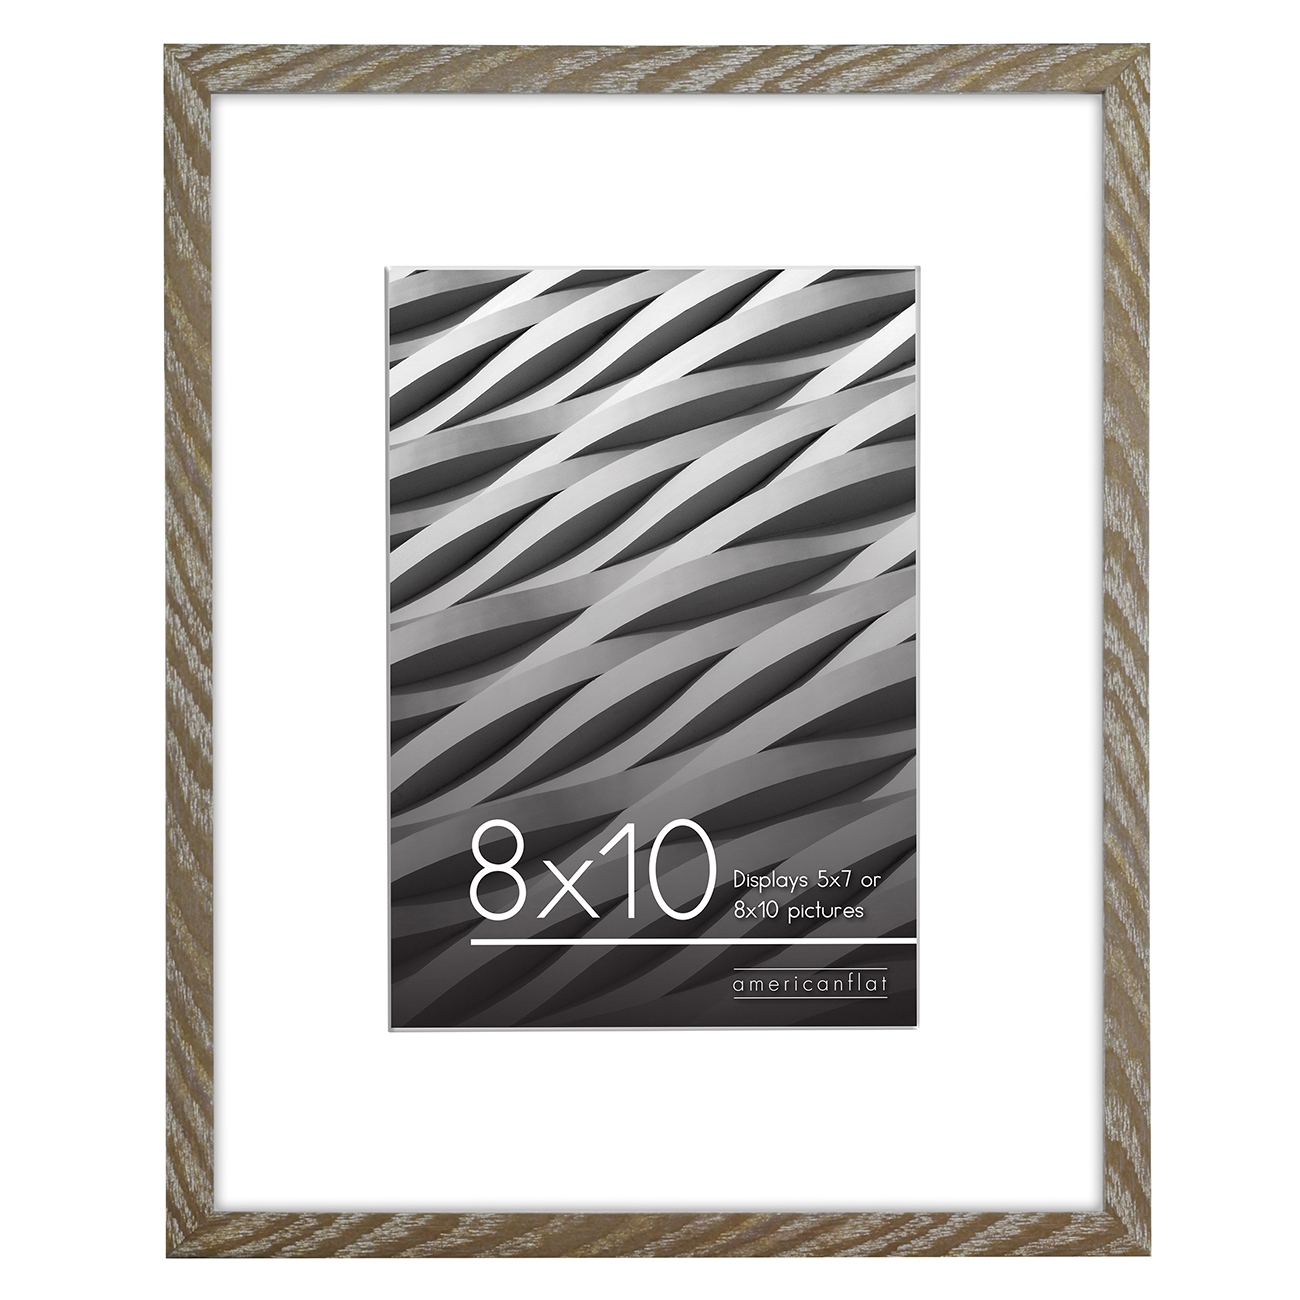 miniature 20 - Americanflat Thin Picture Frame 5x7 8x10 11x14 8.5x11 Wall Tabletop Pick Color